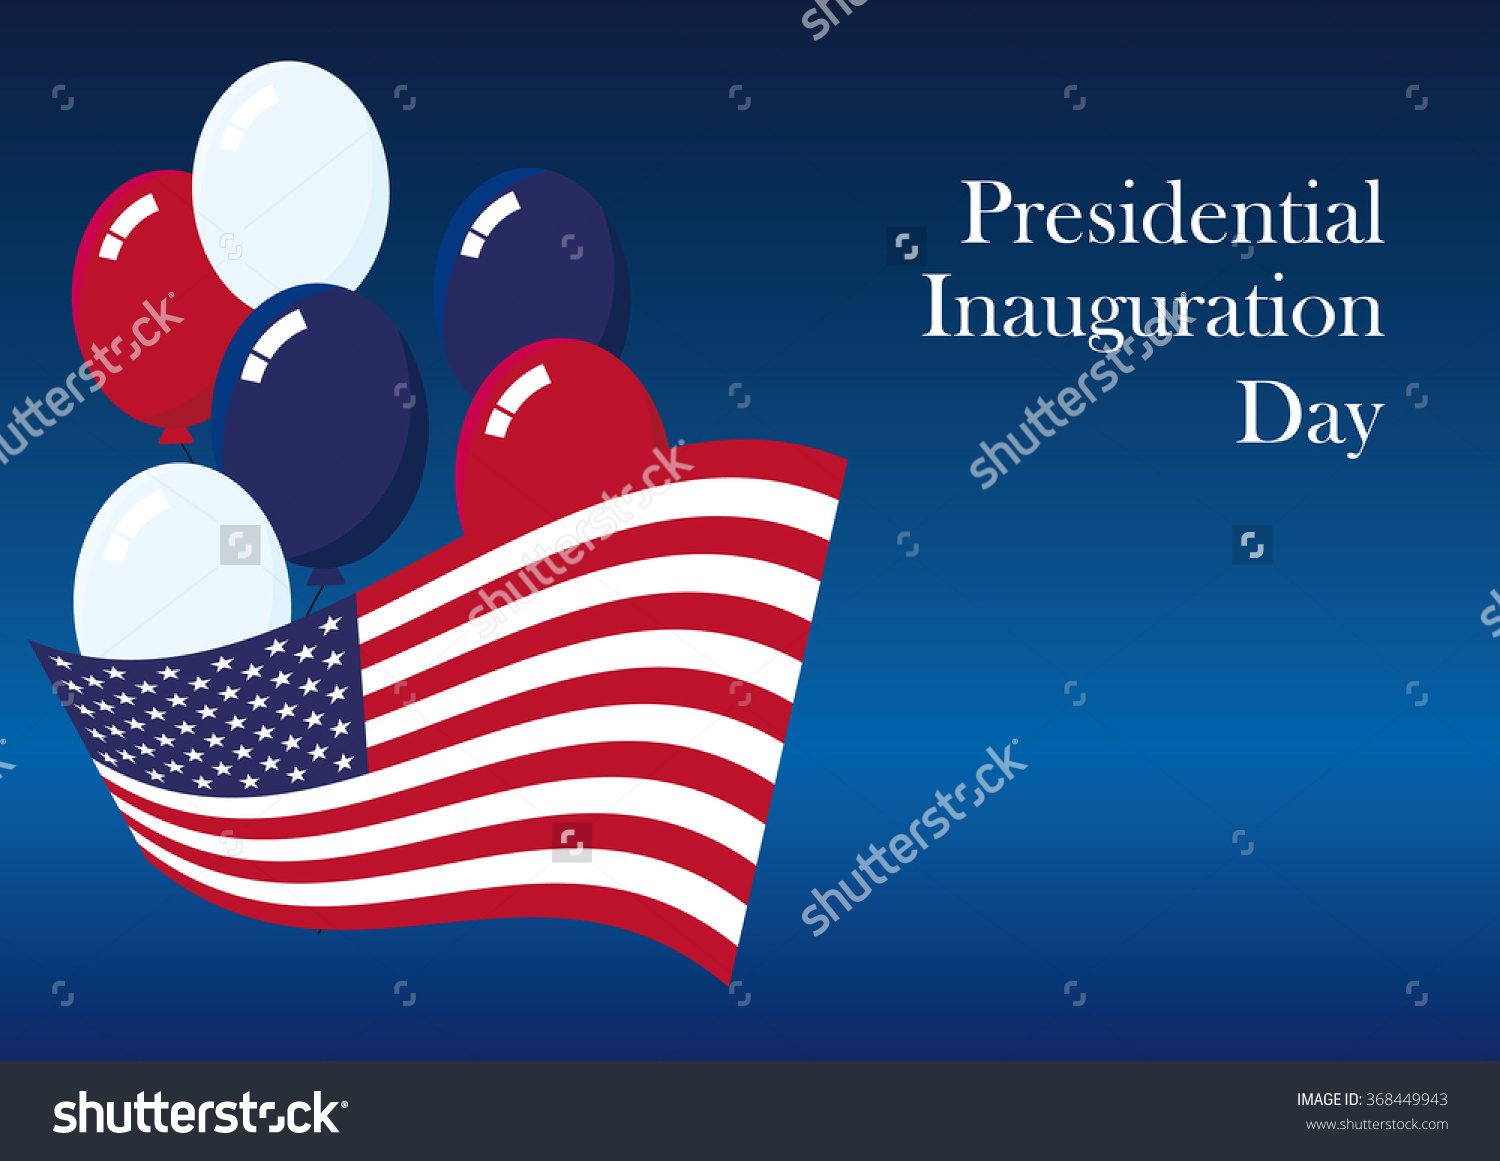 Presidential Inauguration Day..